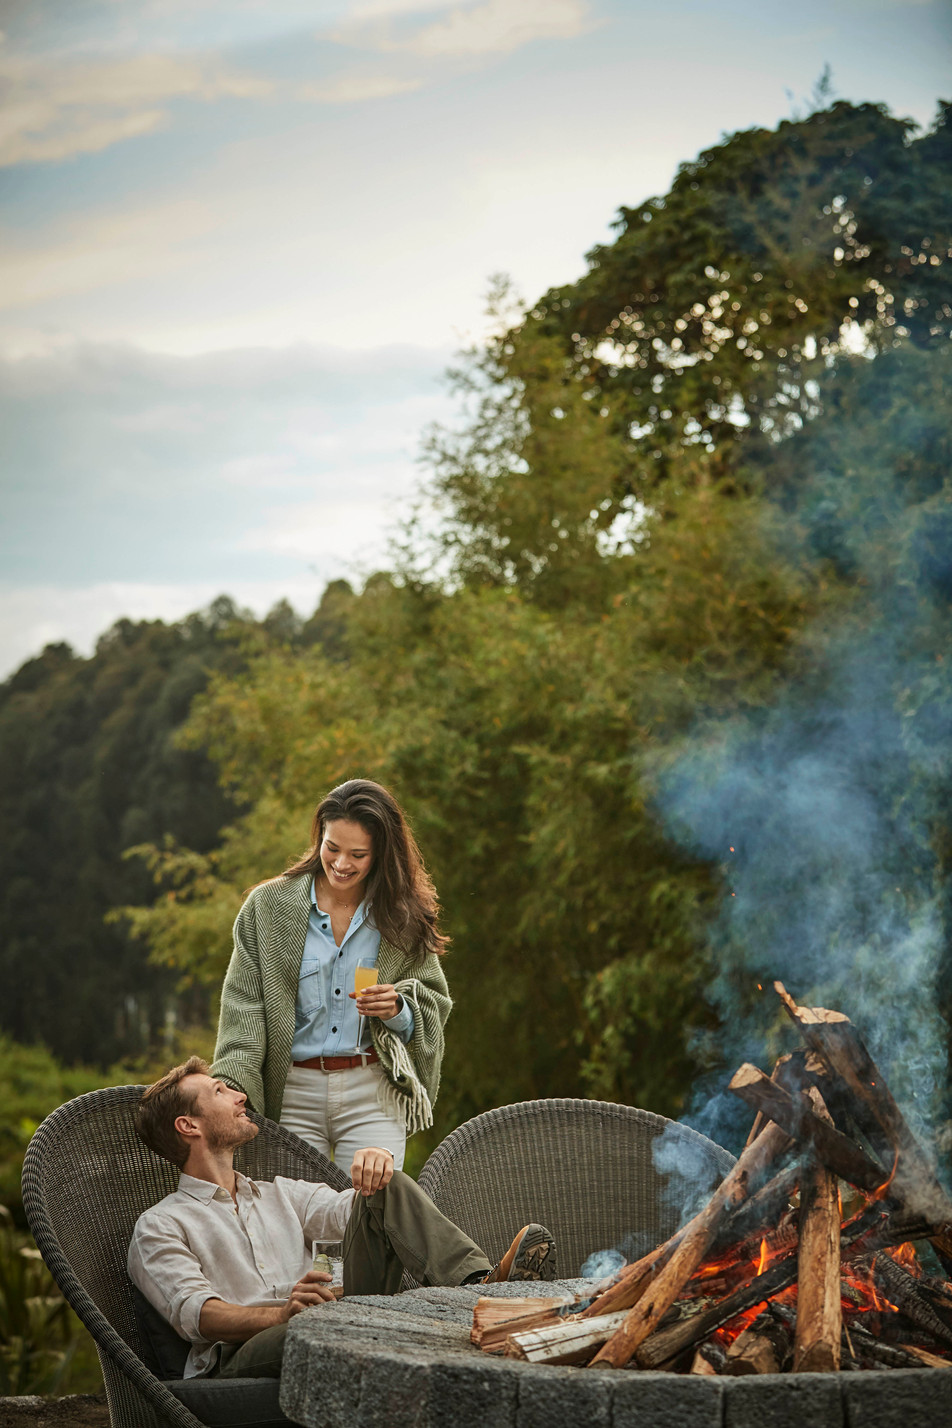 OO_GorillasNest_Lifestyle_Fire_Pit_16571